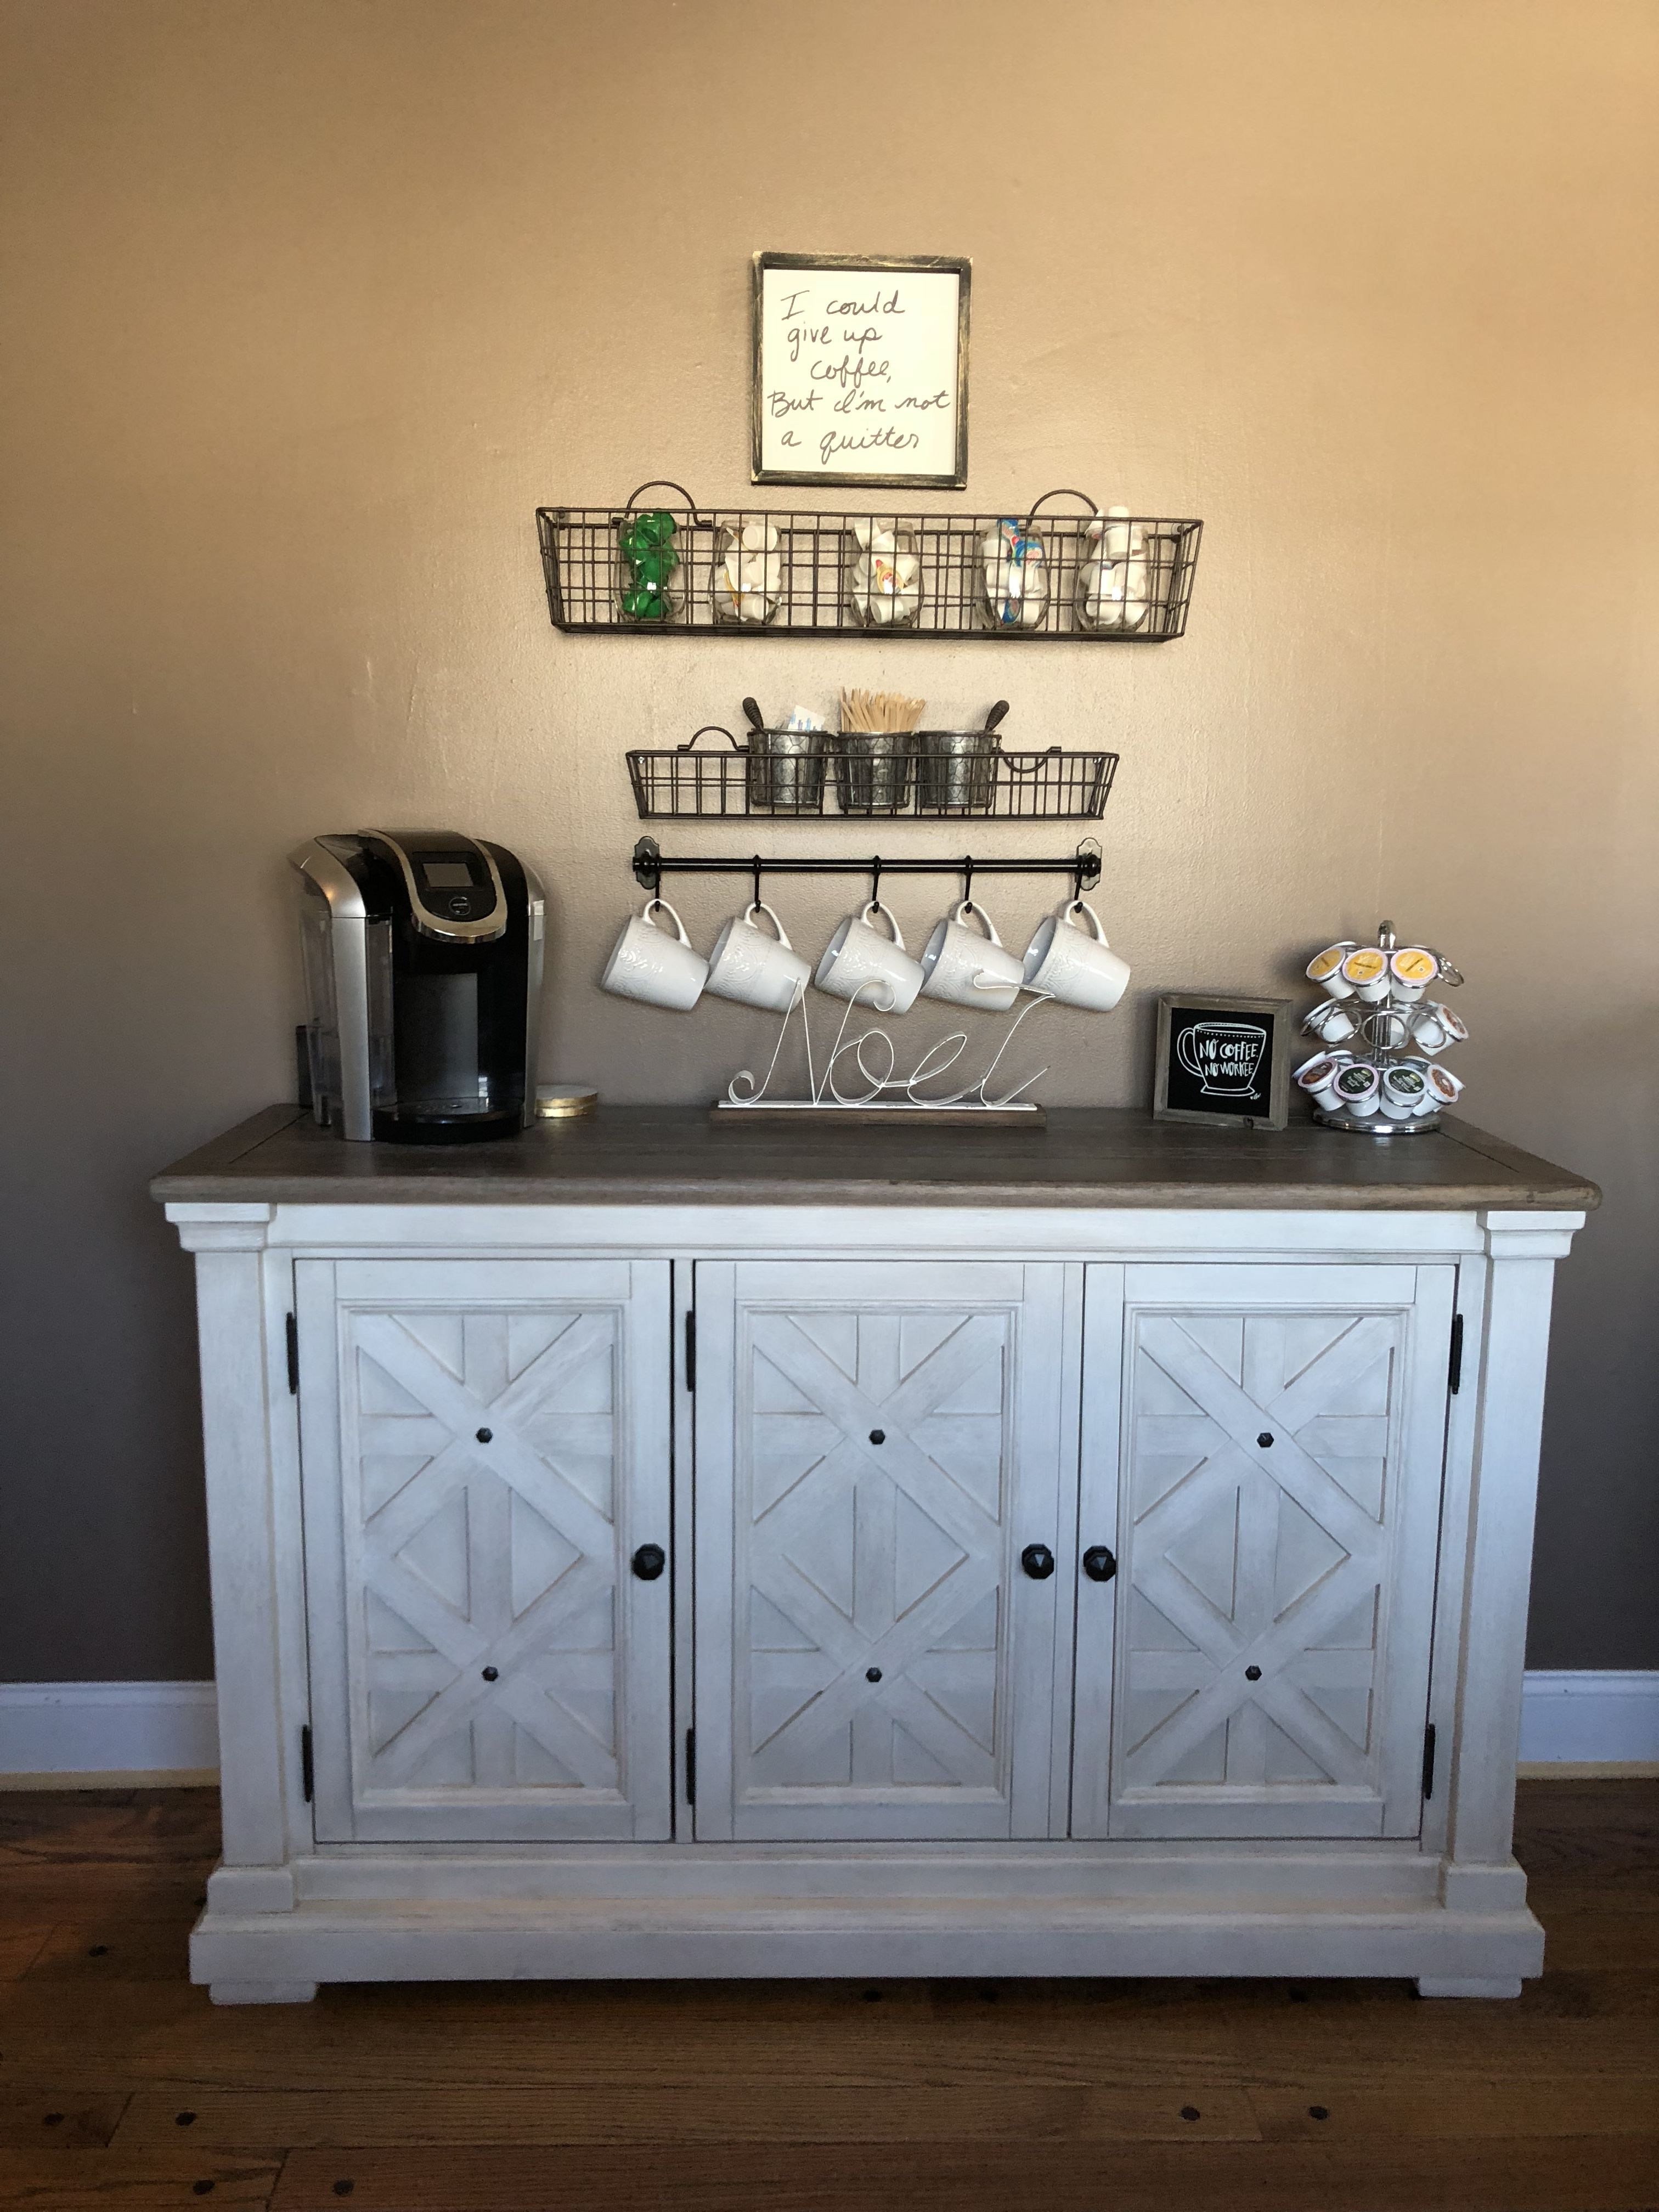 Coffee Bar And Farmhouse Home Inspiration Rustic Chic Rustic Glam Coffee Bar Home Rustic Dining Room Home Office Furniture